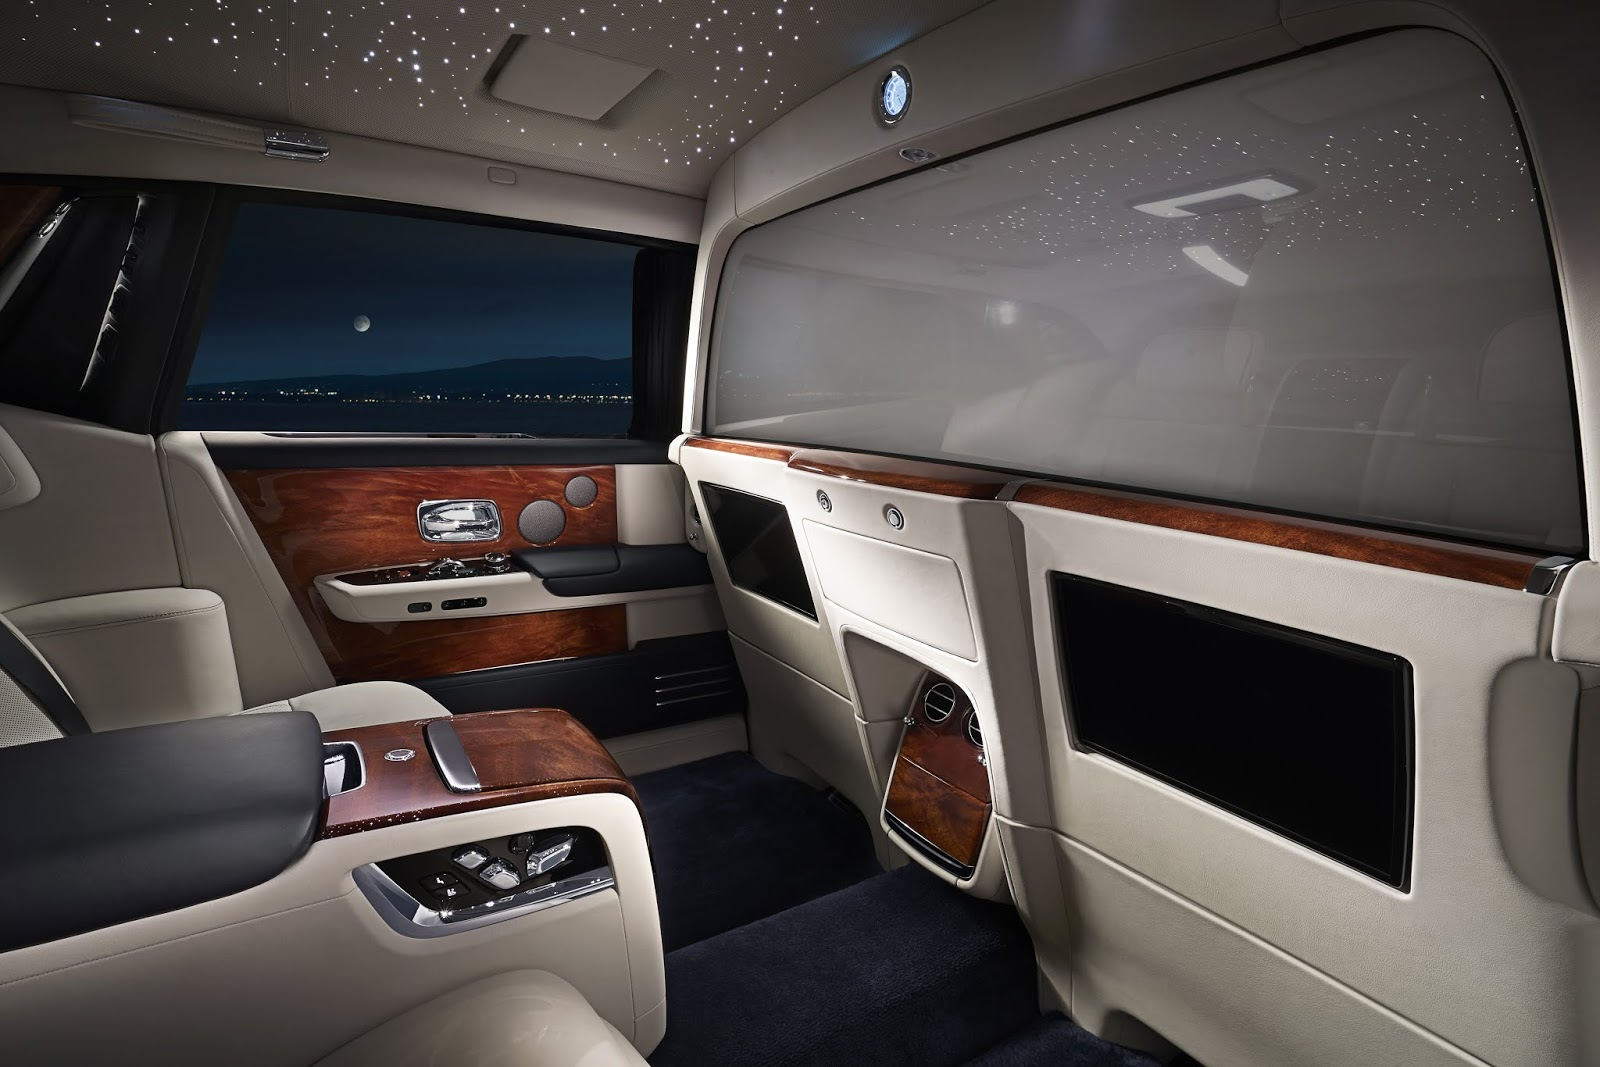 336ab6d091da7 Rolls-Royce has once again demonstrated the link between luxury and  technology with the integration of Electrochromatic Glass, allowing front  and rear ...